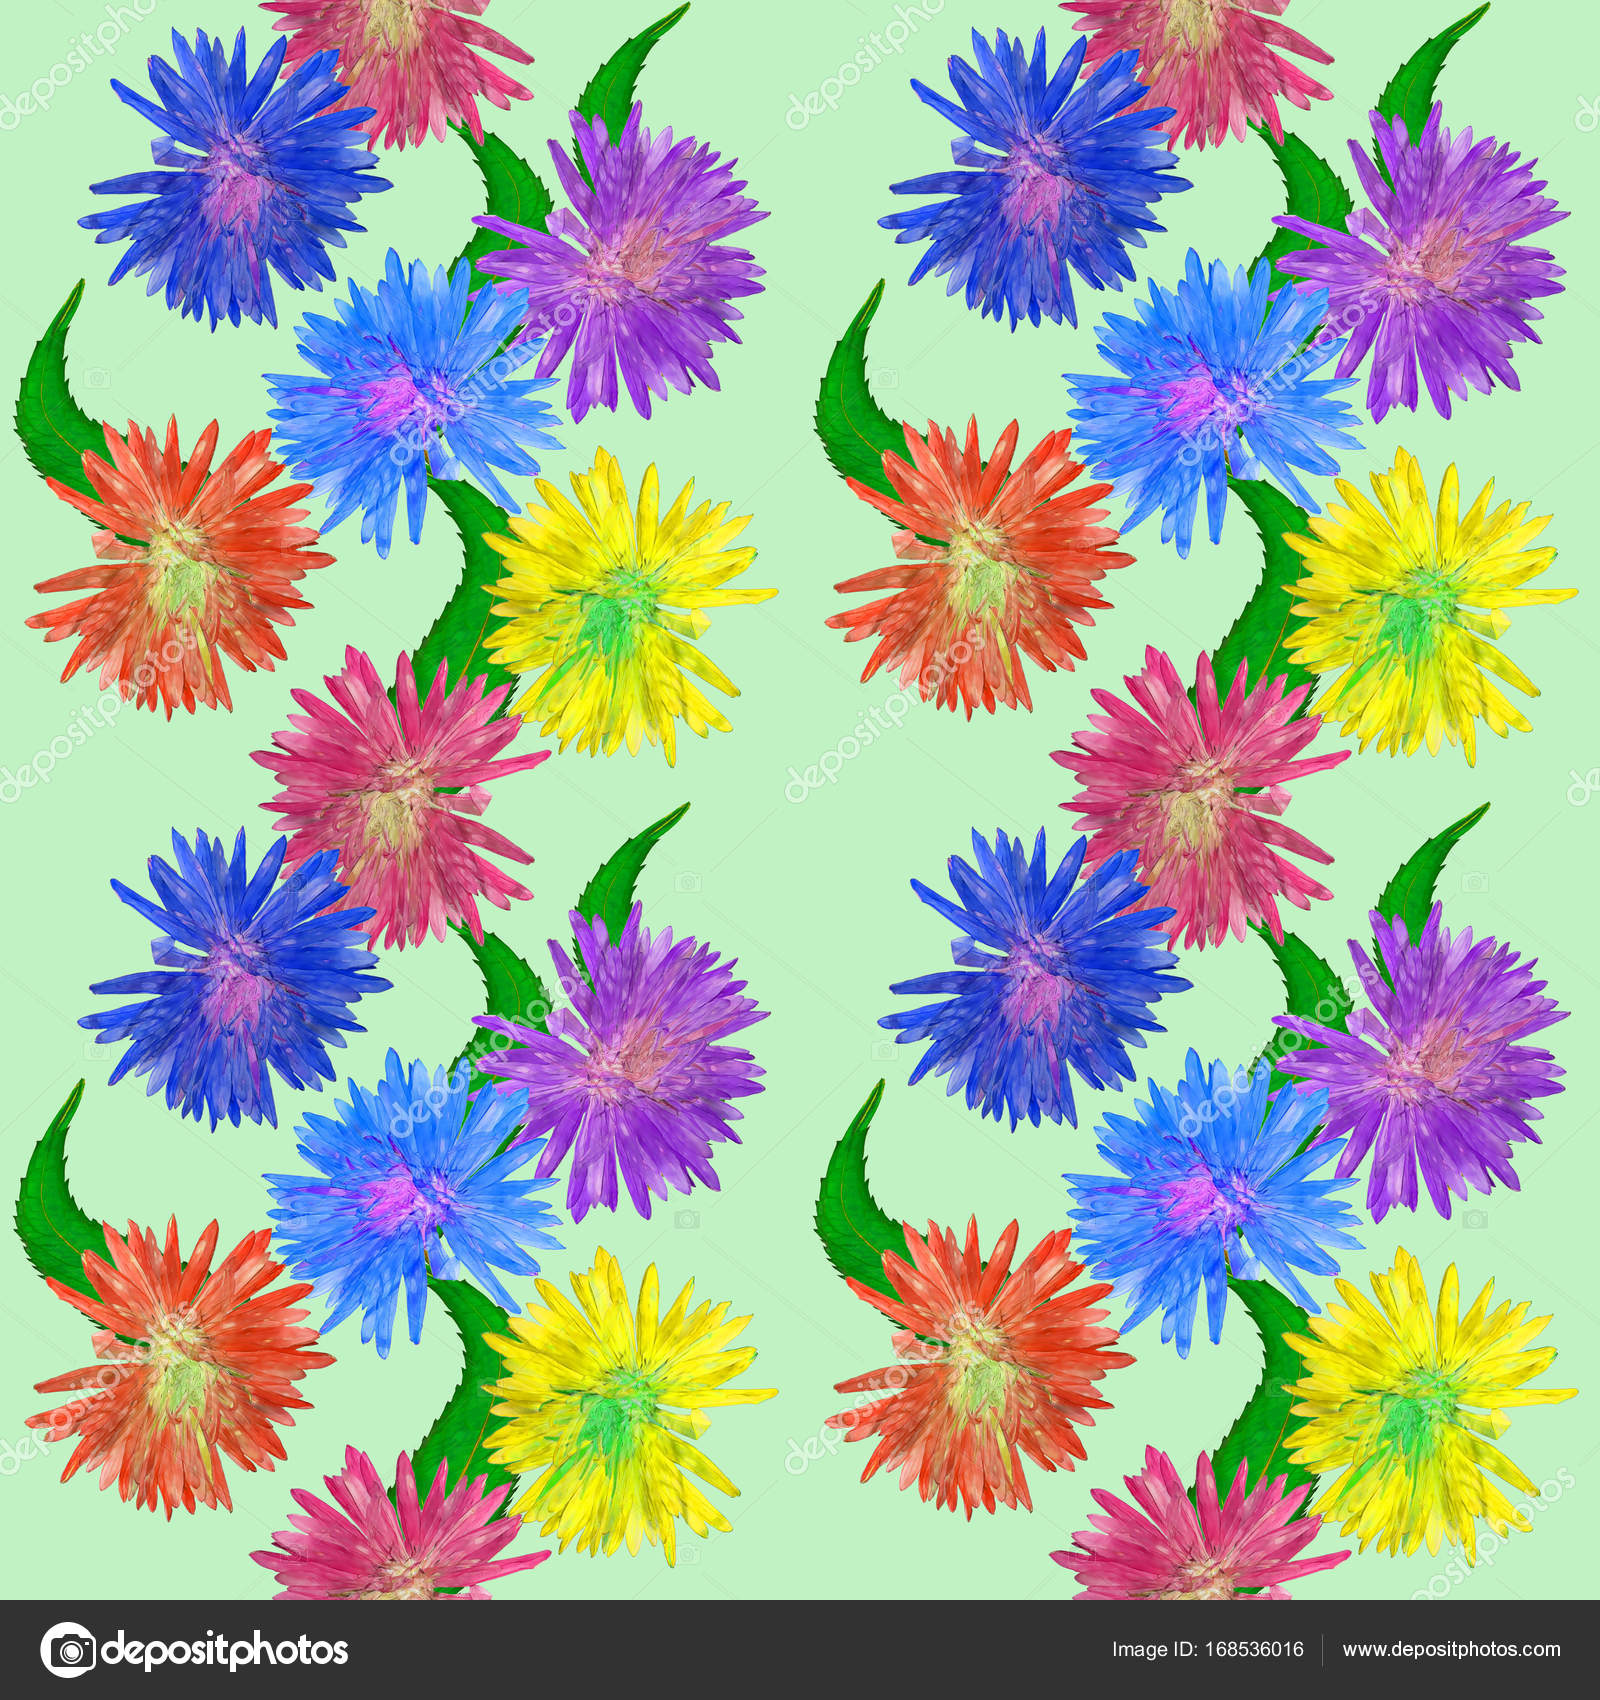 Aster michaelmas daisy seamless pattern texture of flowers fl aster michaelmas daisy texture of flowers seamless pattern for continuous replicate floral background photo collage for production of textile izmirmasajfo